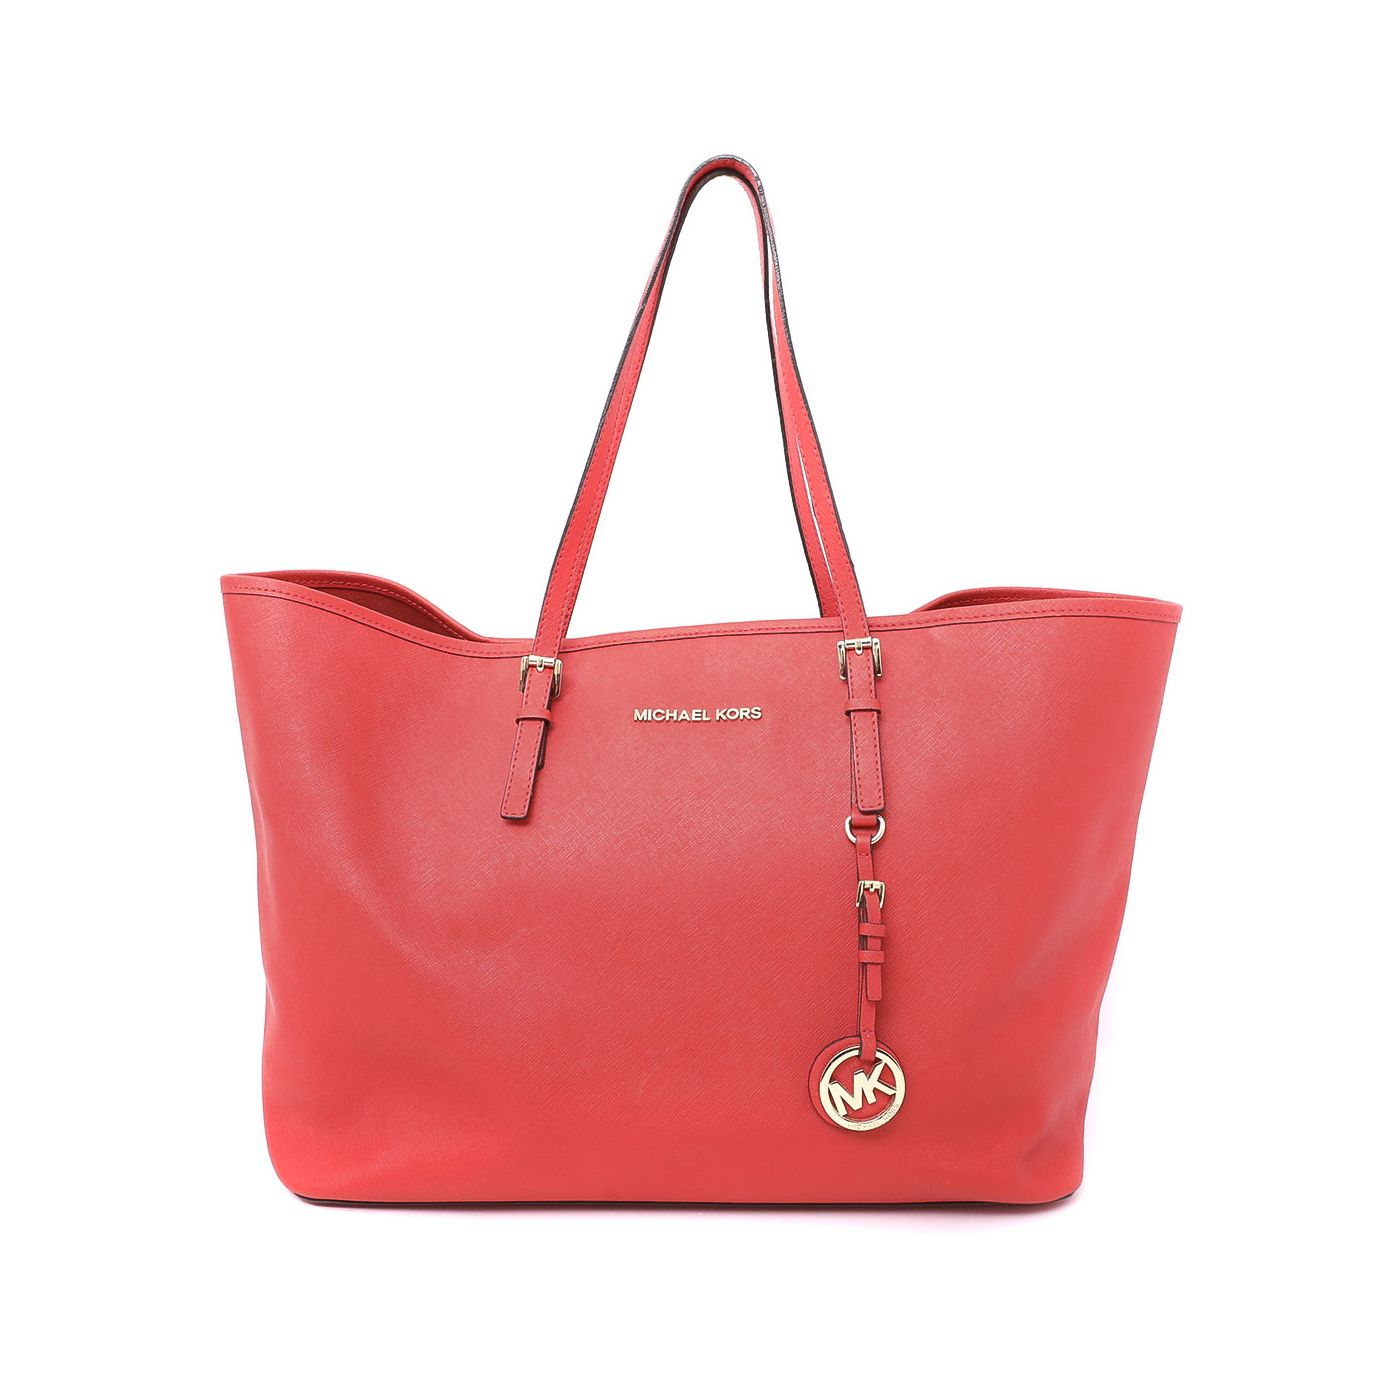 Michael Kors Coral Jet Set Travel Tote Bag